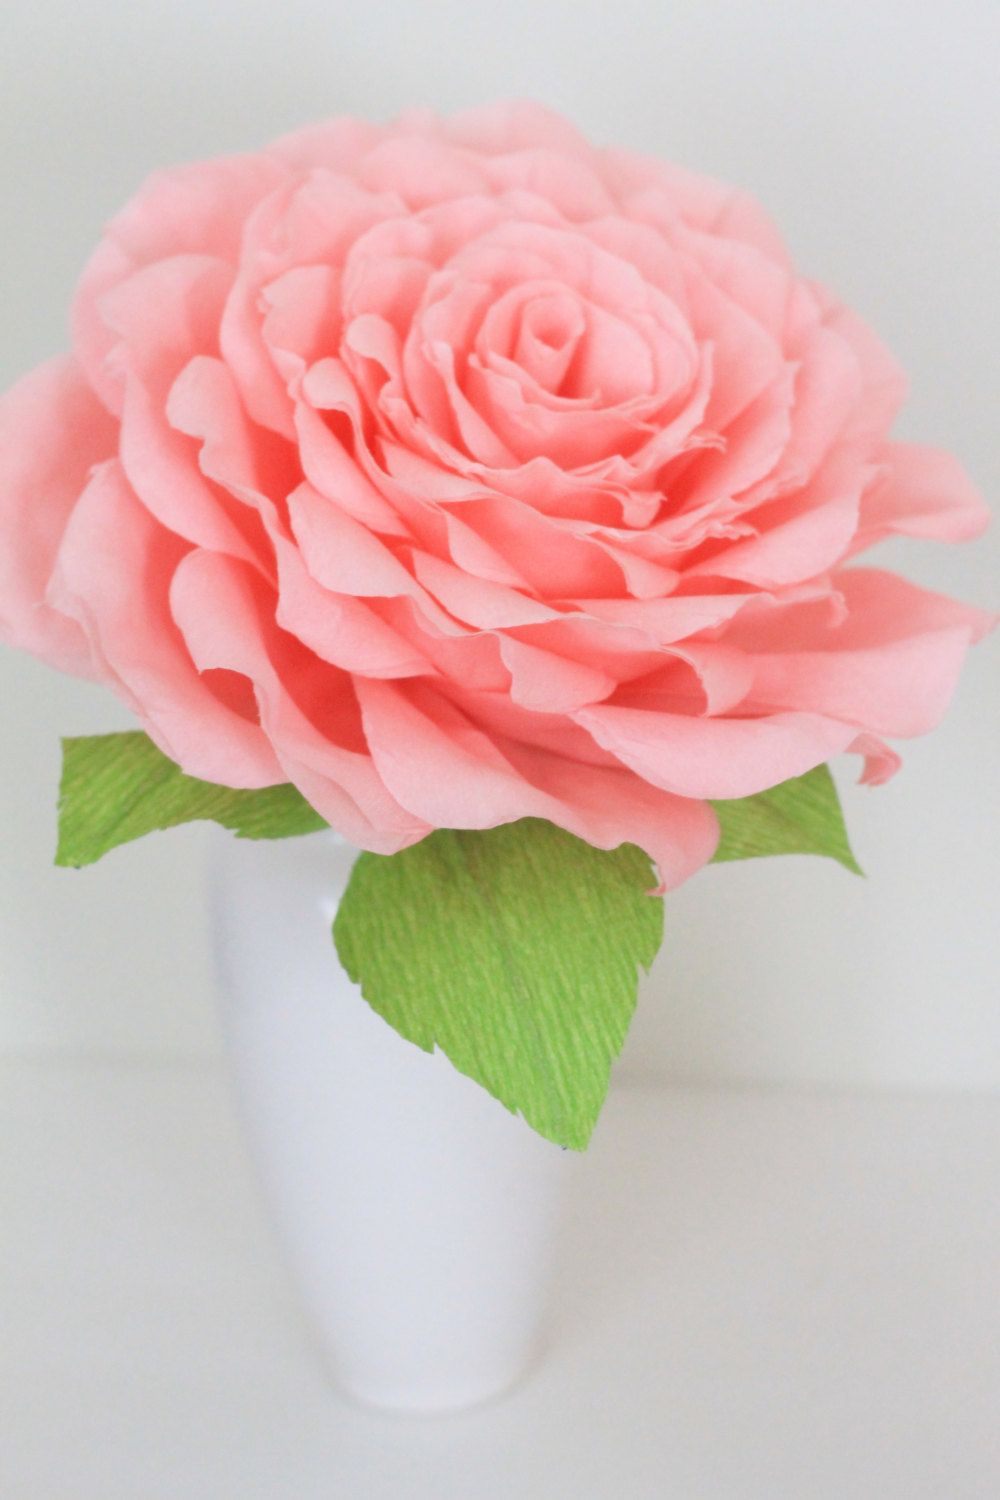 Large paper rose large paper flower for weddingGlamelia bouquet